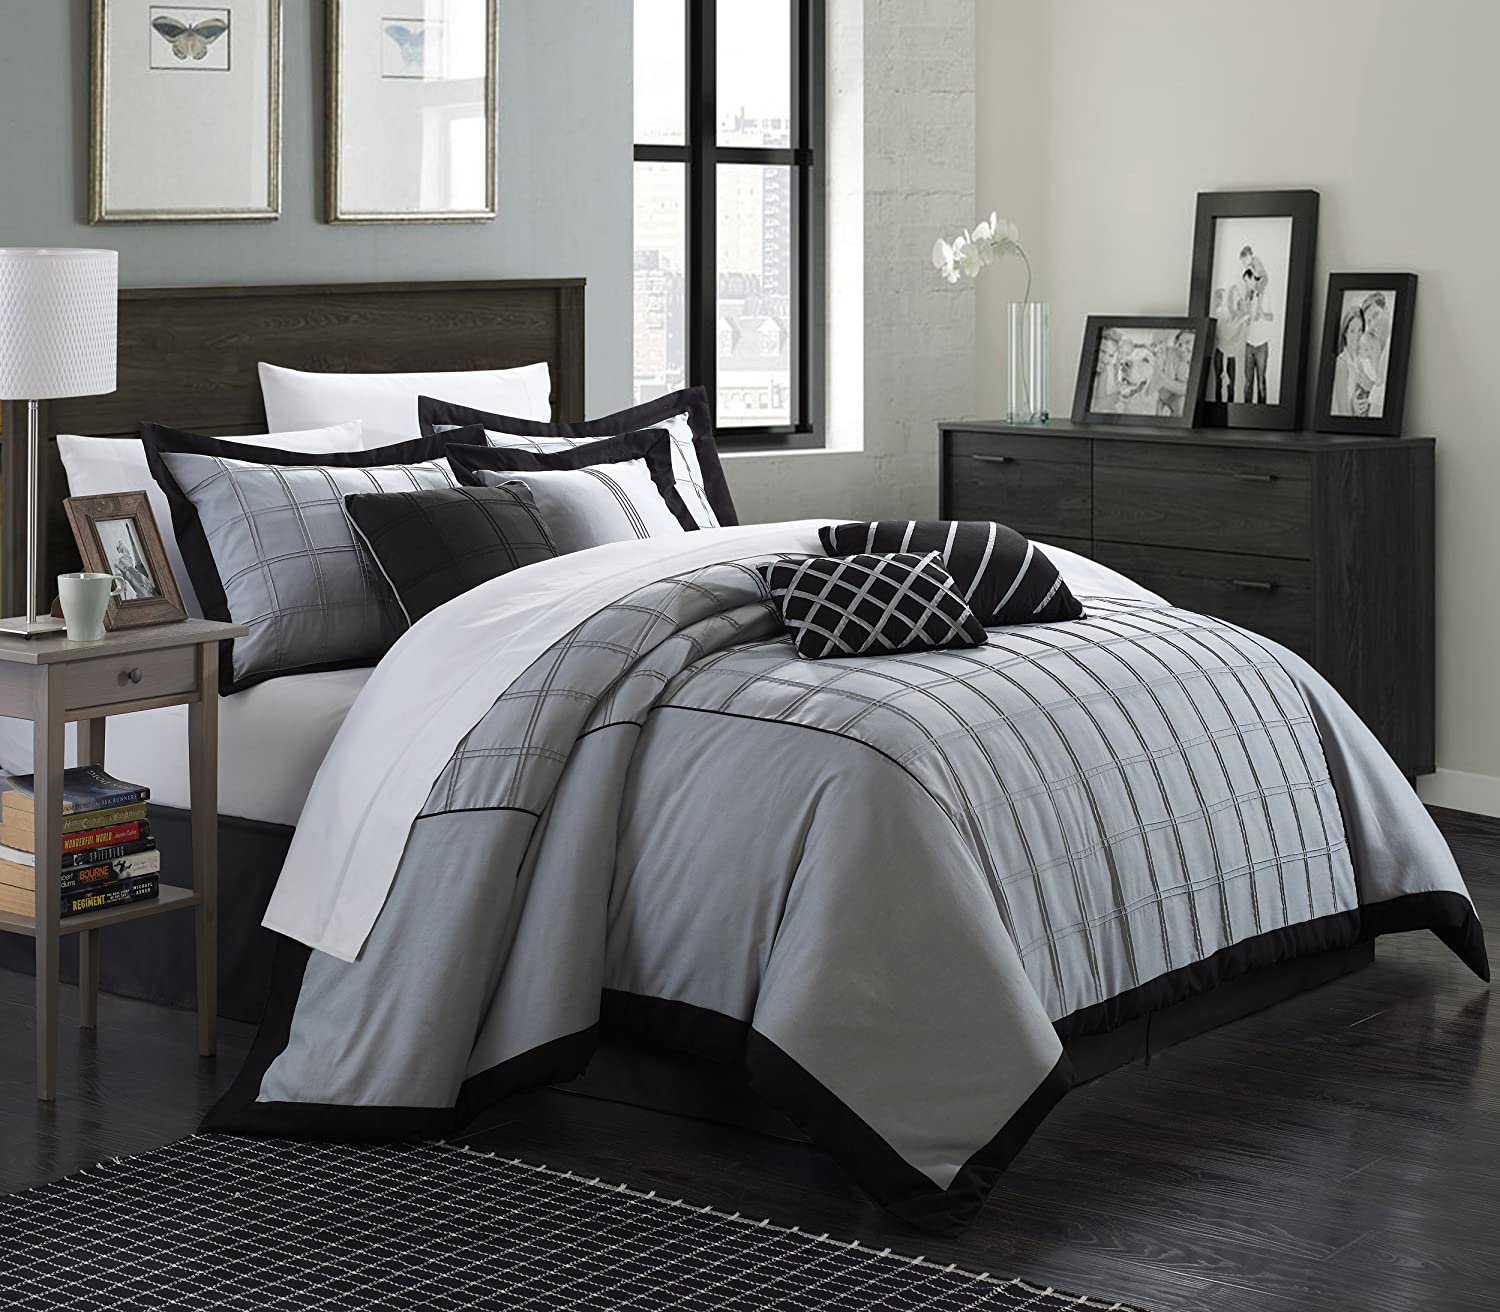 Chic Home 8 Piece Rhodes Pintuck Color Block Comforter Set, King, Black